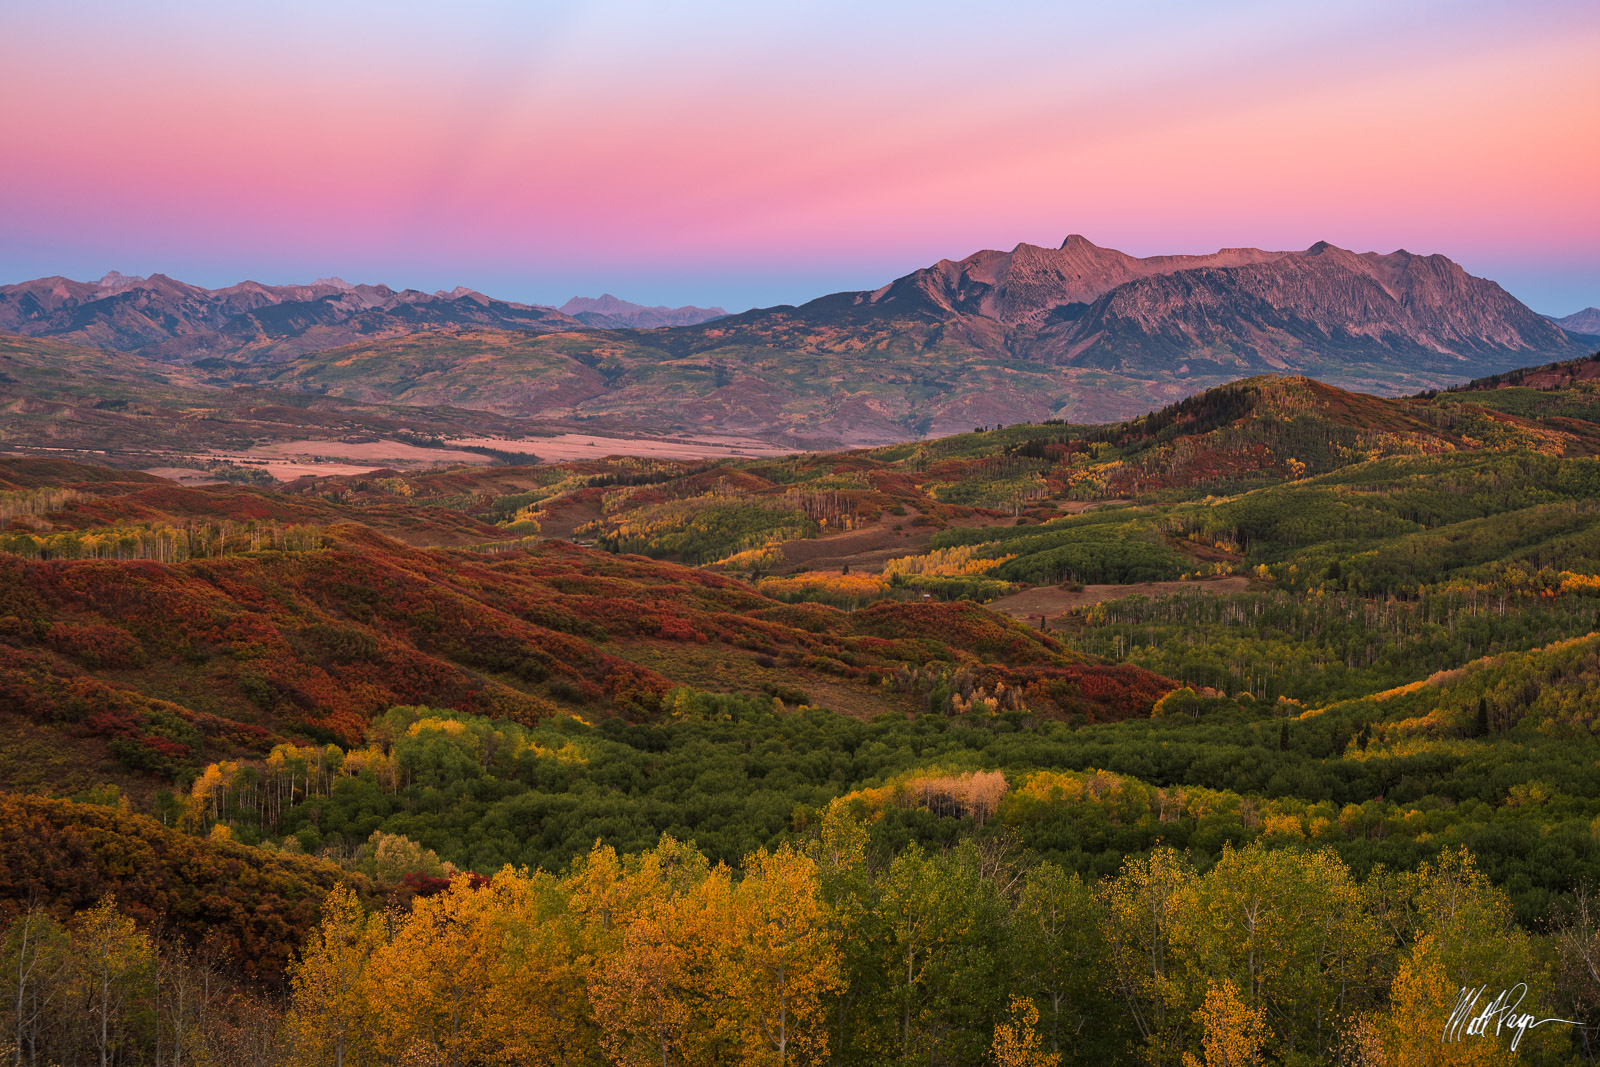 Aspen Trees, Autumn, Belt of Venus, Carbondale, Chair Mountain, Colorado, Earth Glow, Elk Mountains, Fall, Fall Colors, Landscape, Maroon Bells, McClure Pass, Mountains, The Raggeds, photo